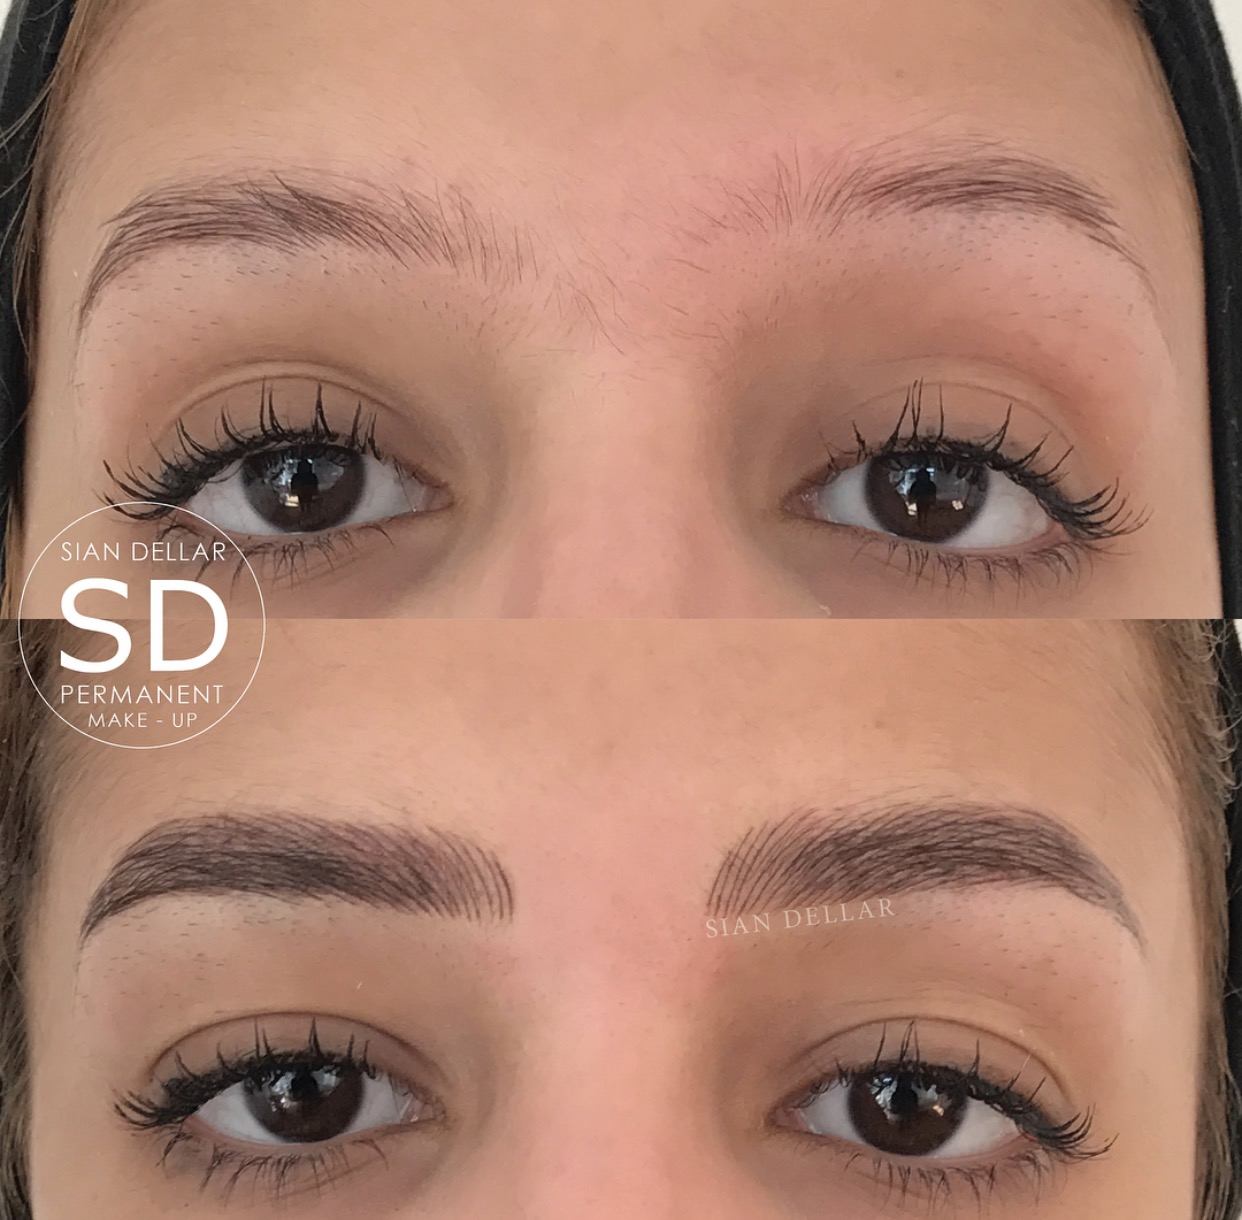 sian dellar | microblading -before & after pics